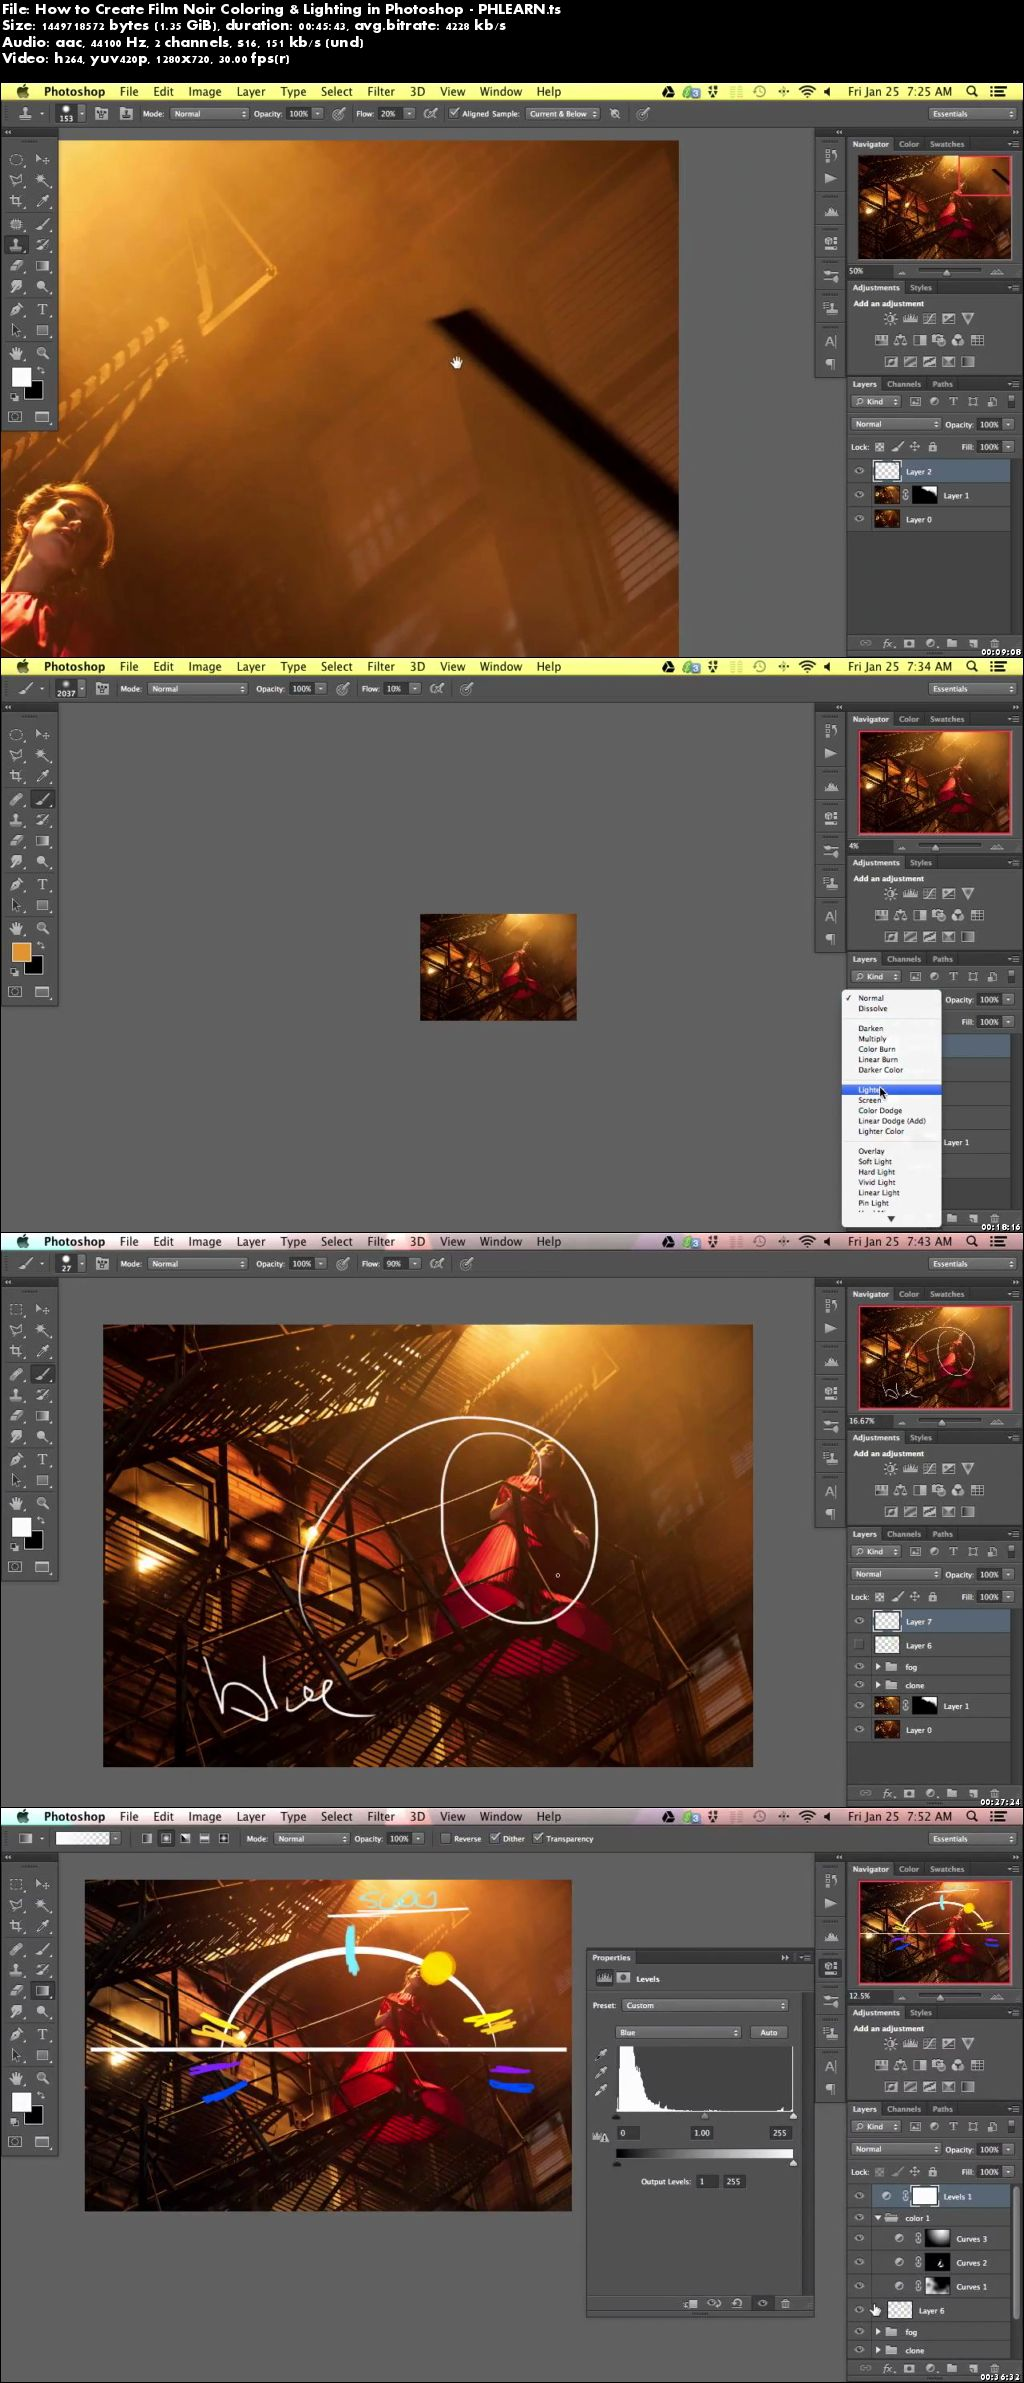 Download How to Create Film Noir Coloring & Lighting in Photoshop